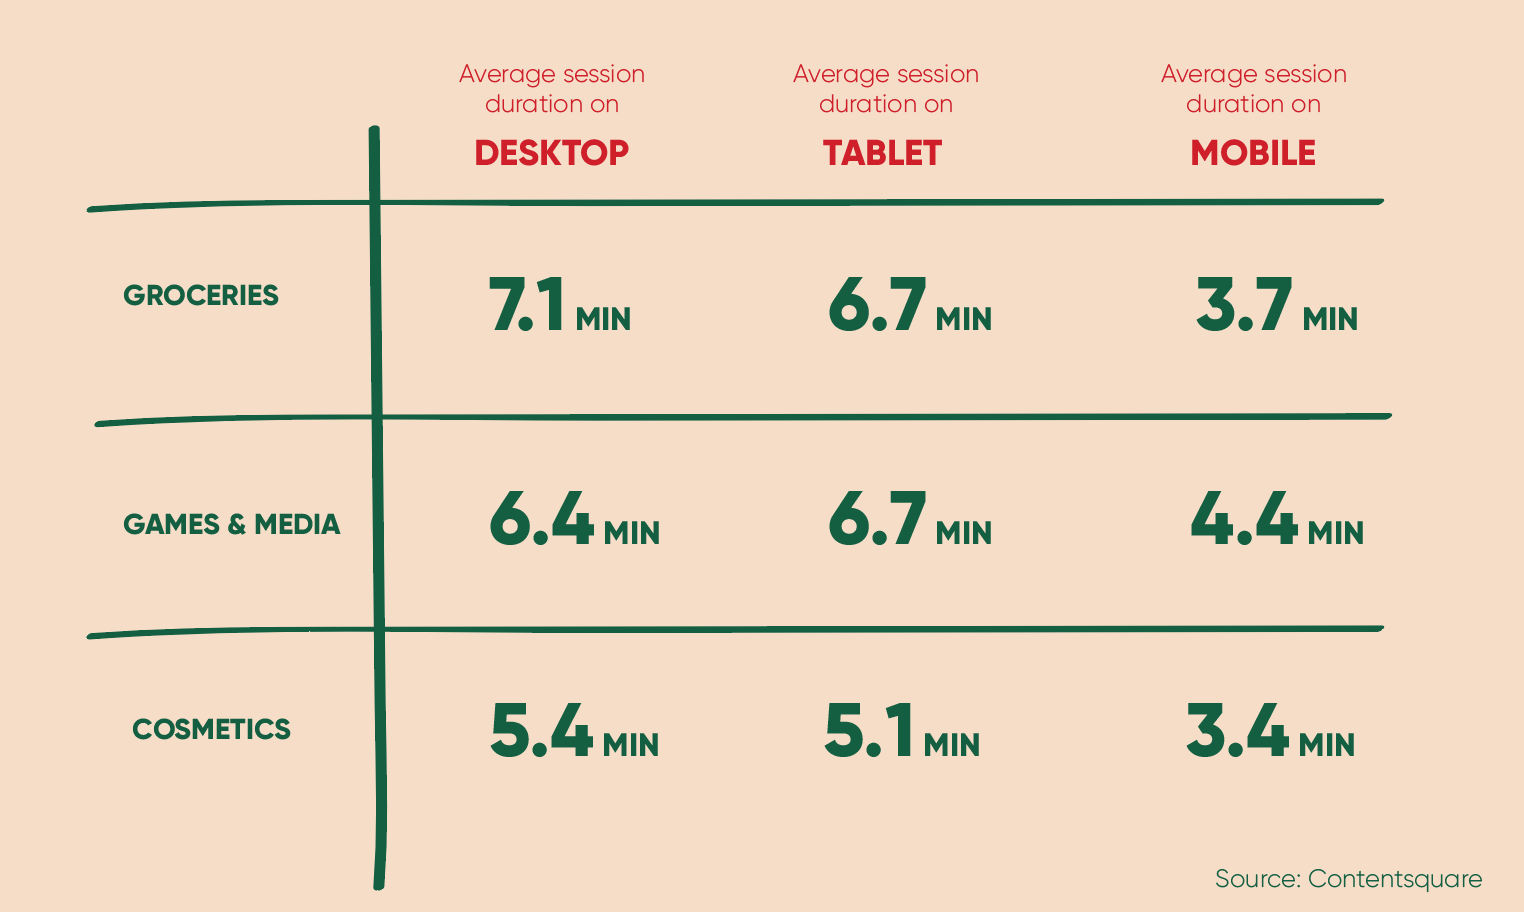 Average session duration of online grocery stores